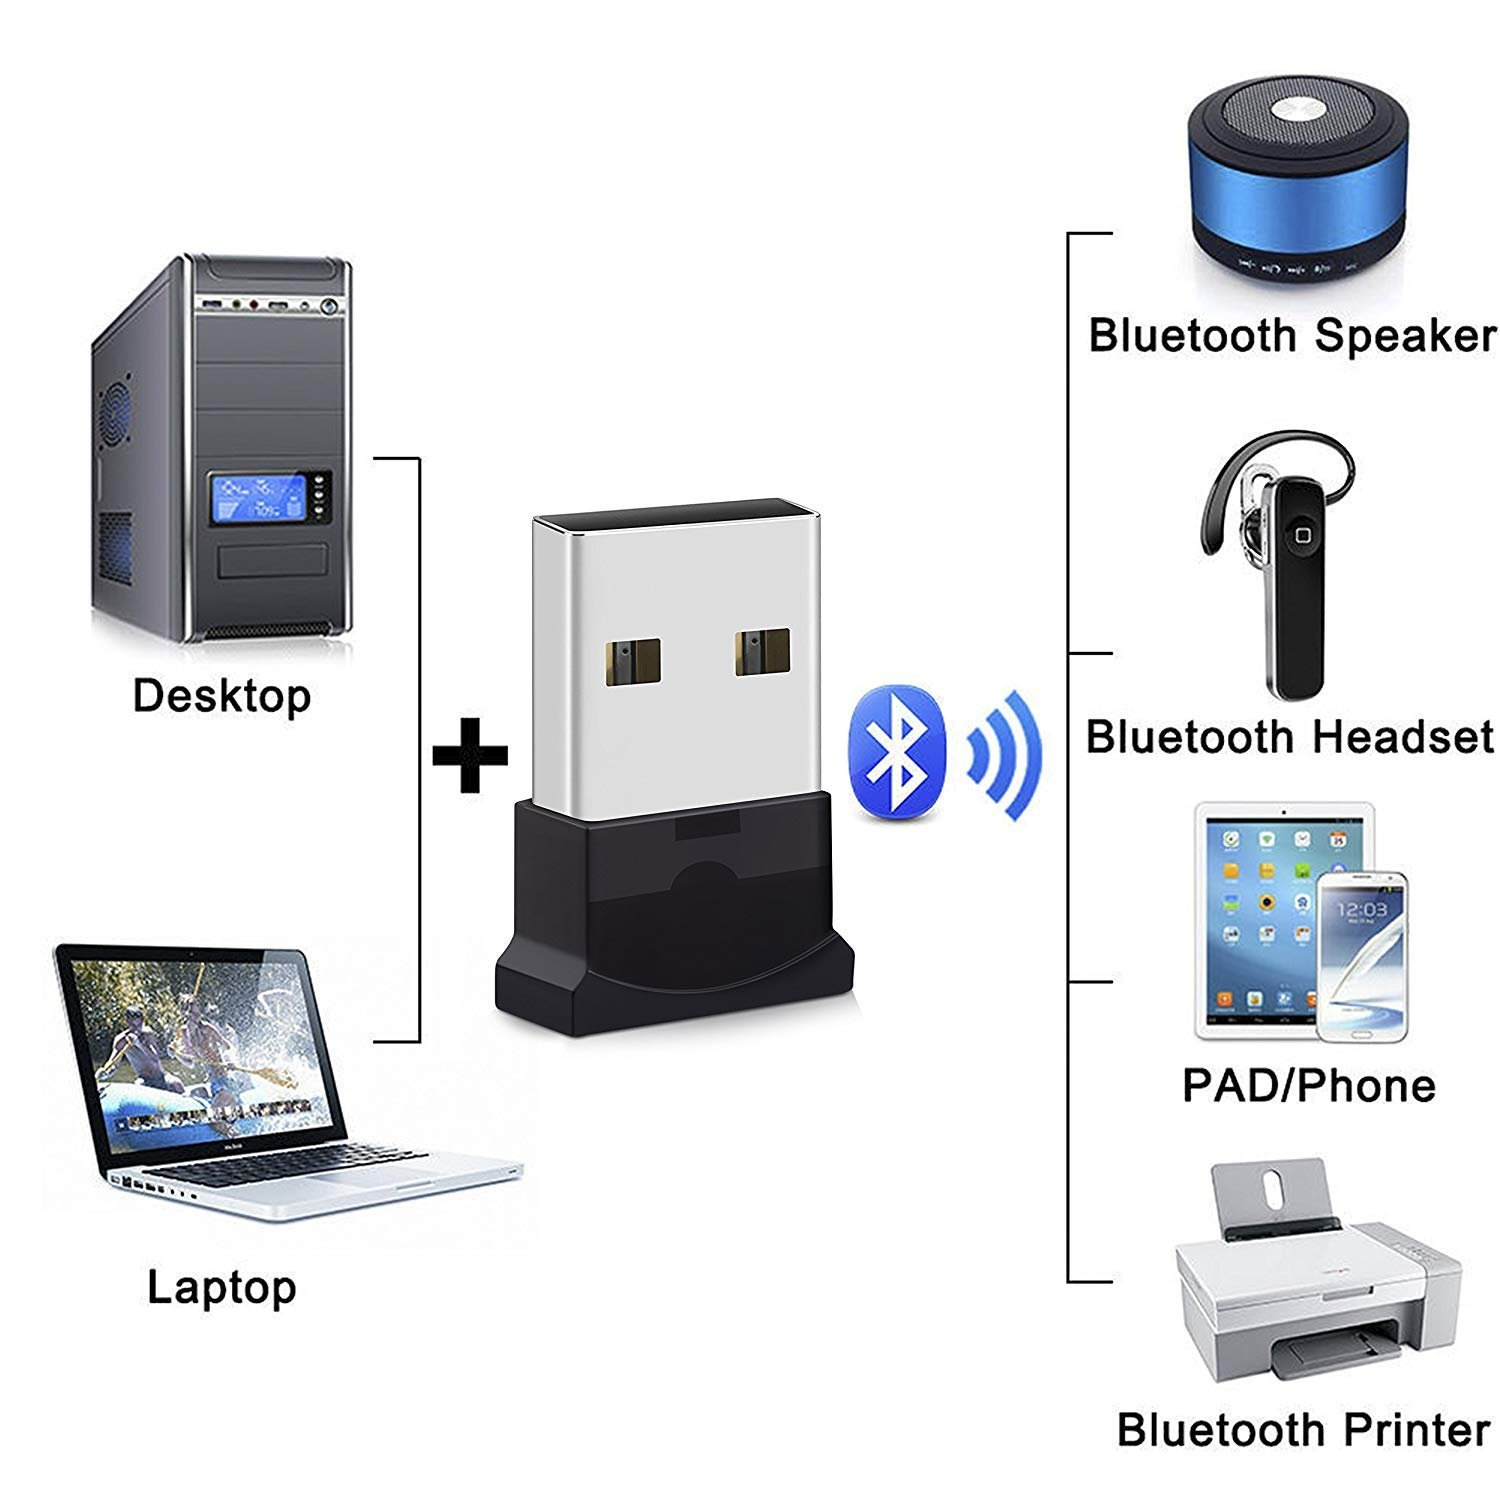 Bluetooth USB Adapter, Bluetooth 4.0 USB Dongle, Low Energy for PC, Wireless Dongle, for Stereo Music, Keyboard, Mouse, Support Windows 10 8.1 8 7 XP vista by JFen (Image #3)